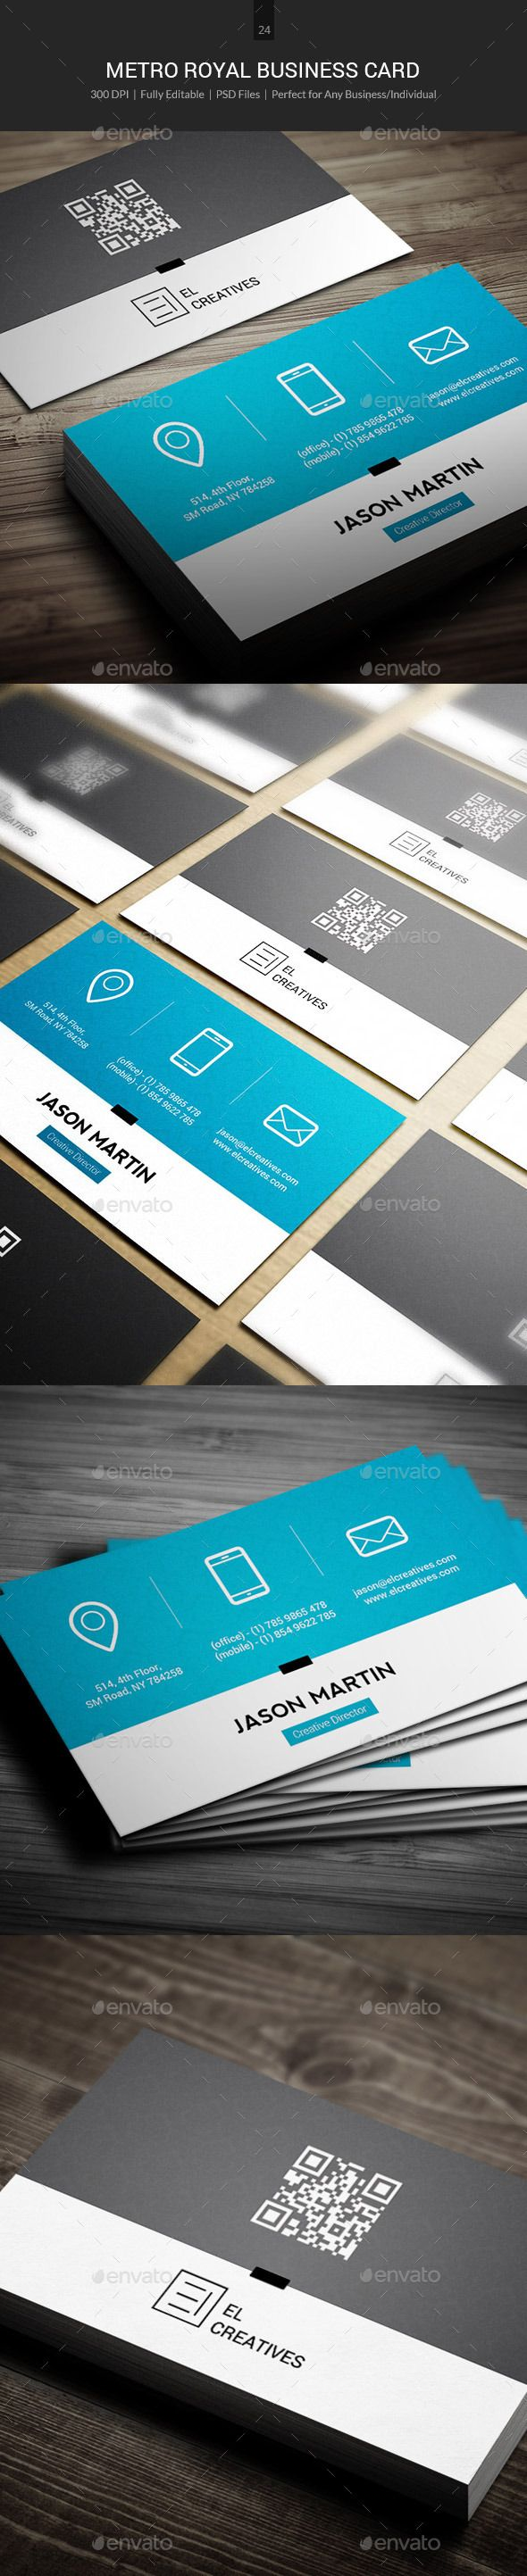 Royal Metro Business Card - 24 | Business cards, Royals and Business